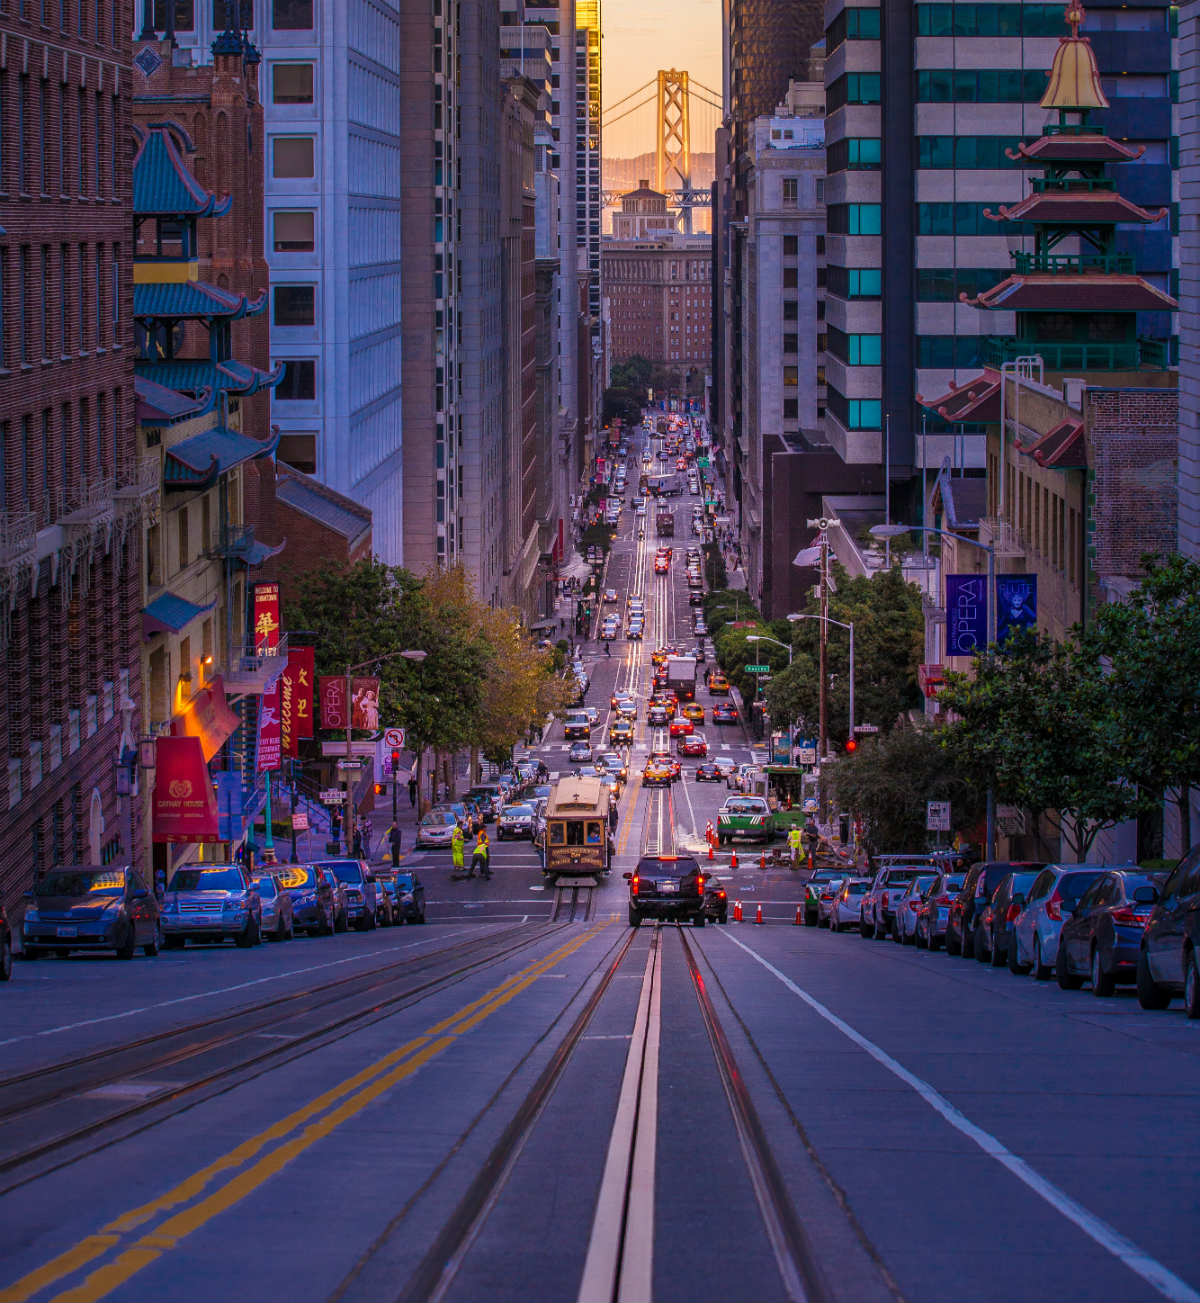 Craigslist Sf Bay Area >> The Renter's Guide To Picking A San Francisco Neighborhood